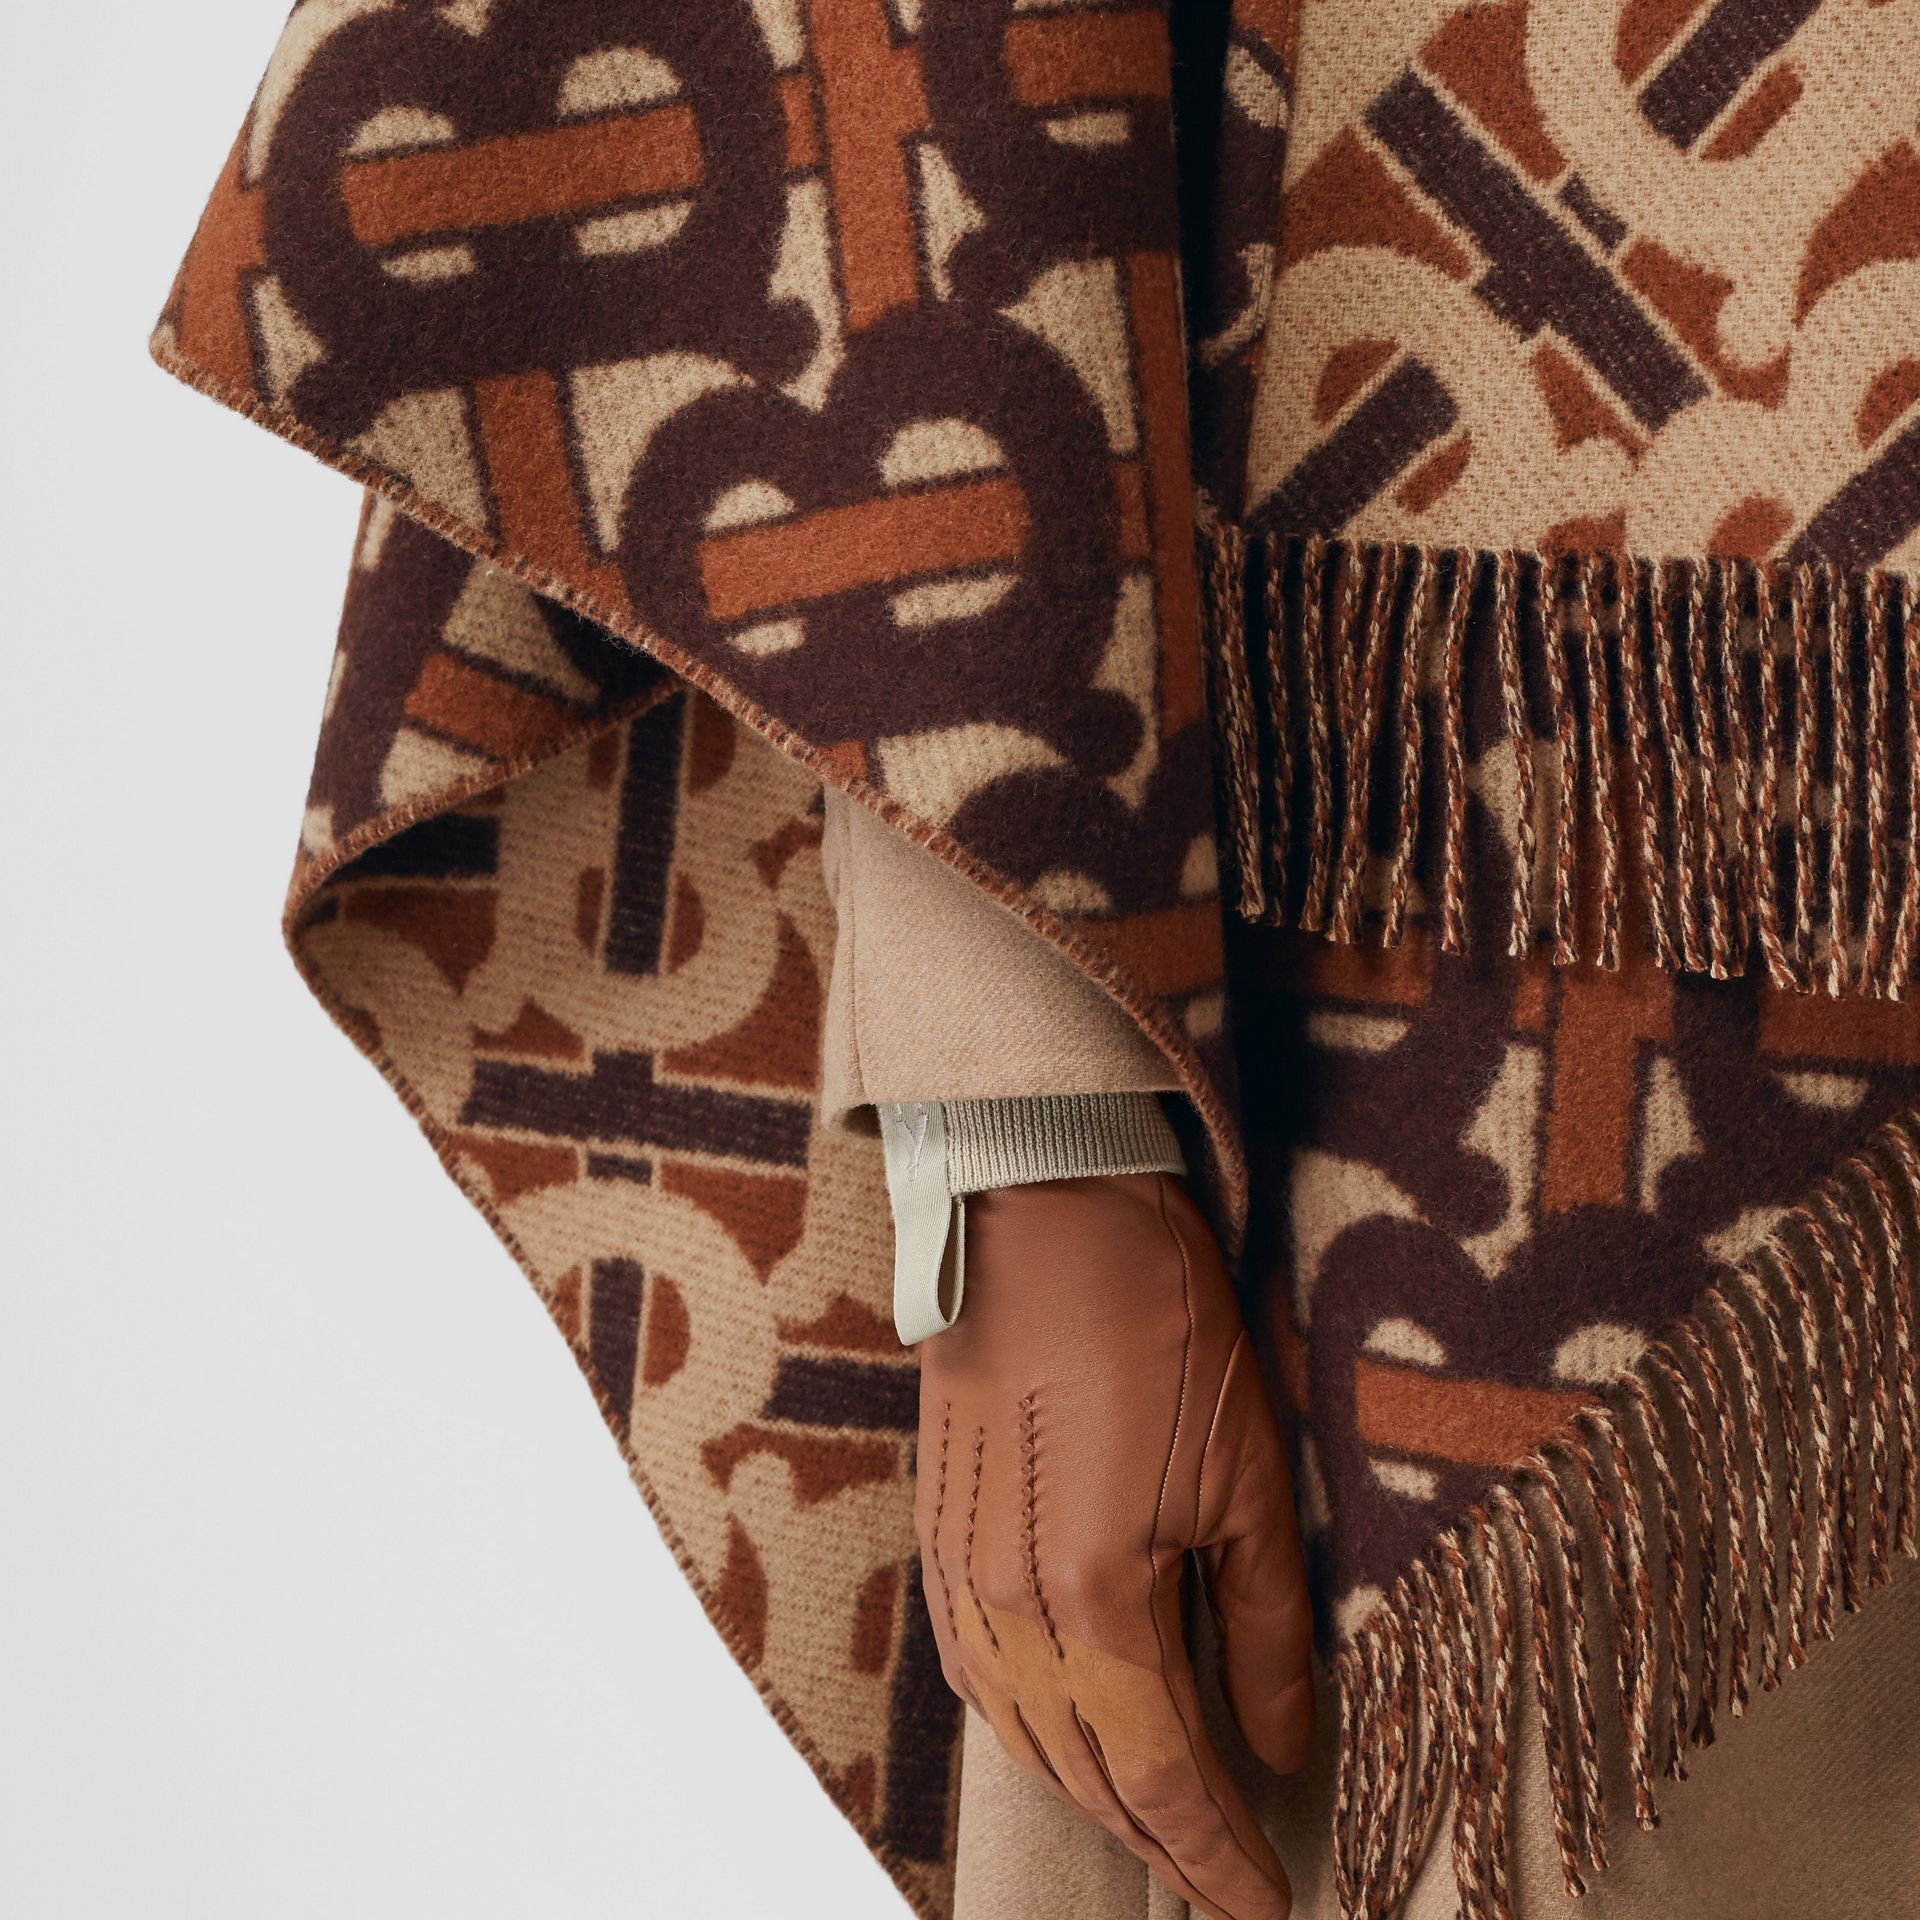 Monogram Merino Wool Cashmere Jacquard Cape in Dark Mocha - Women | Burberry Hong Kong S.A.R - gallery image 4